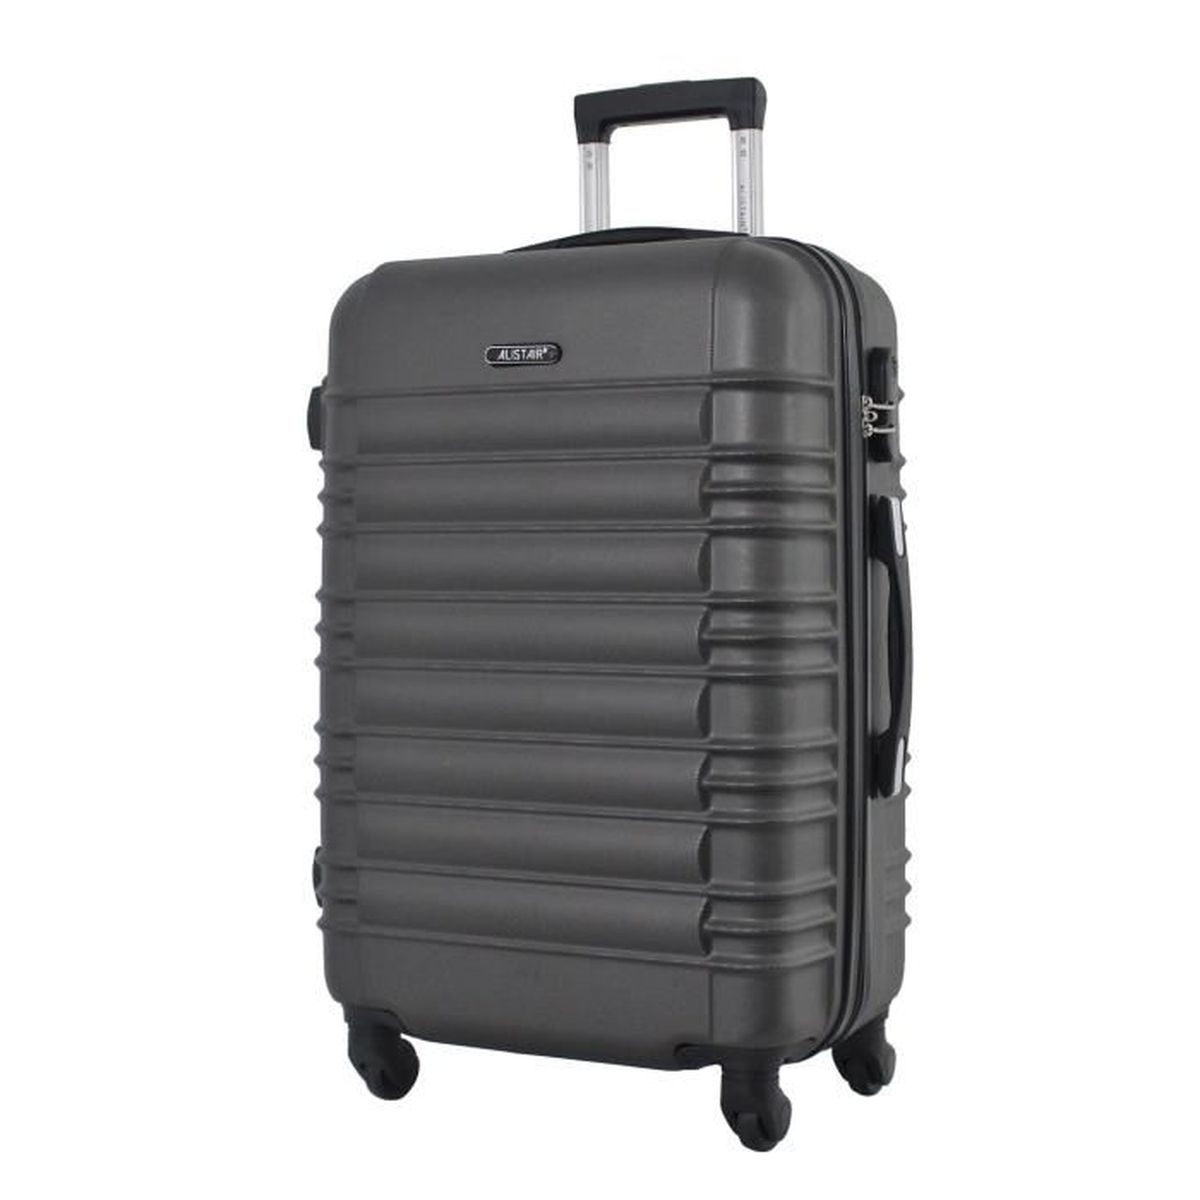 """VALISE - BAGAGE Valise Moyenne 65cm - ALISTAIR """"Neofly"""" - ABS Ultr"""